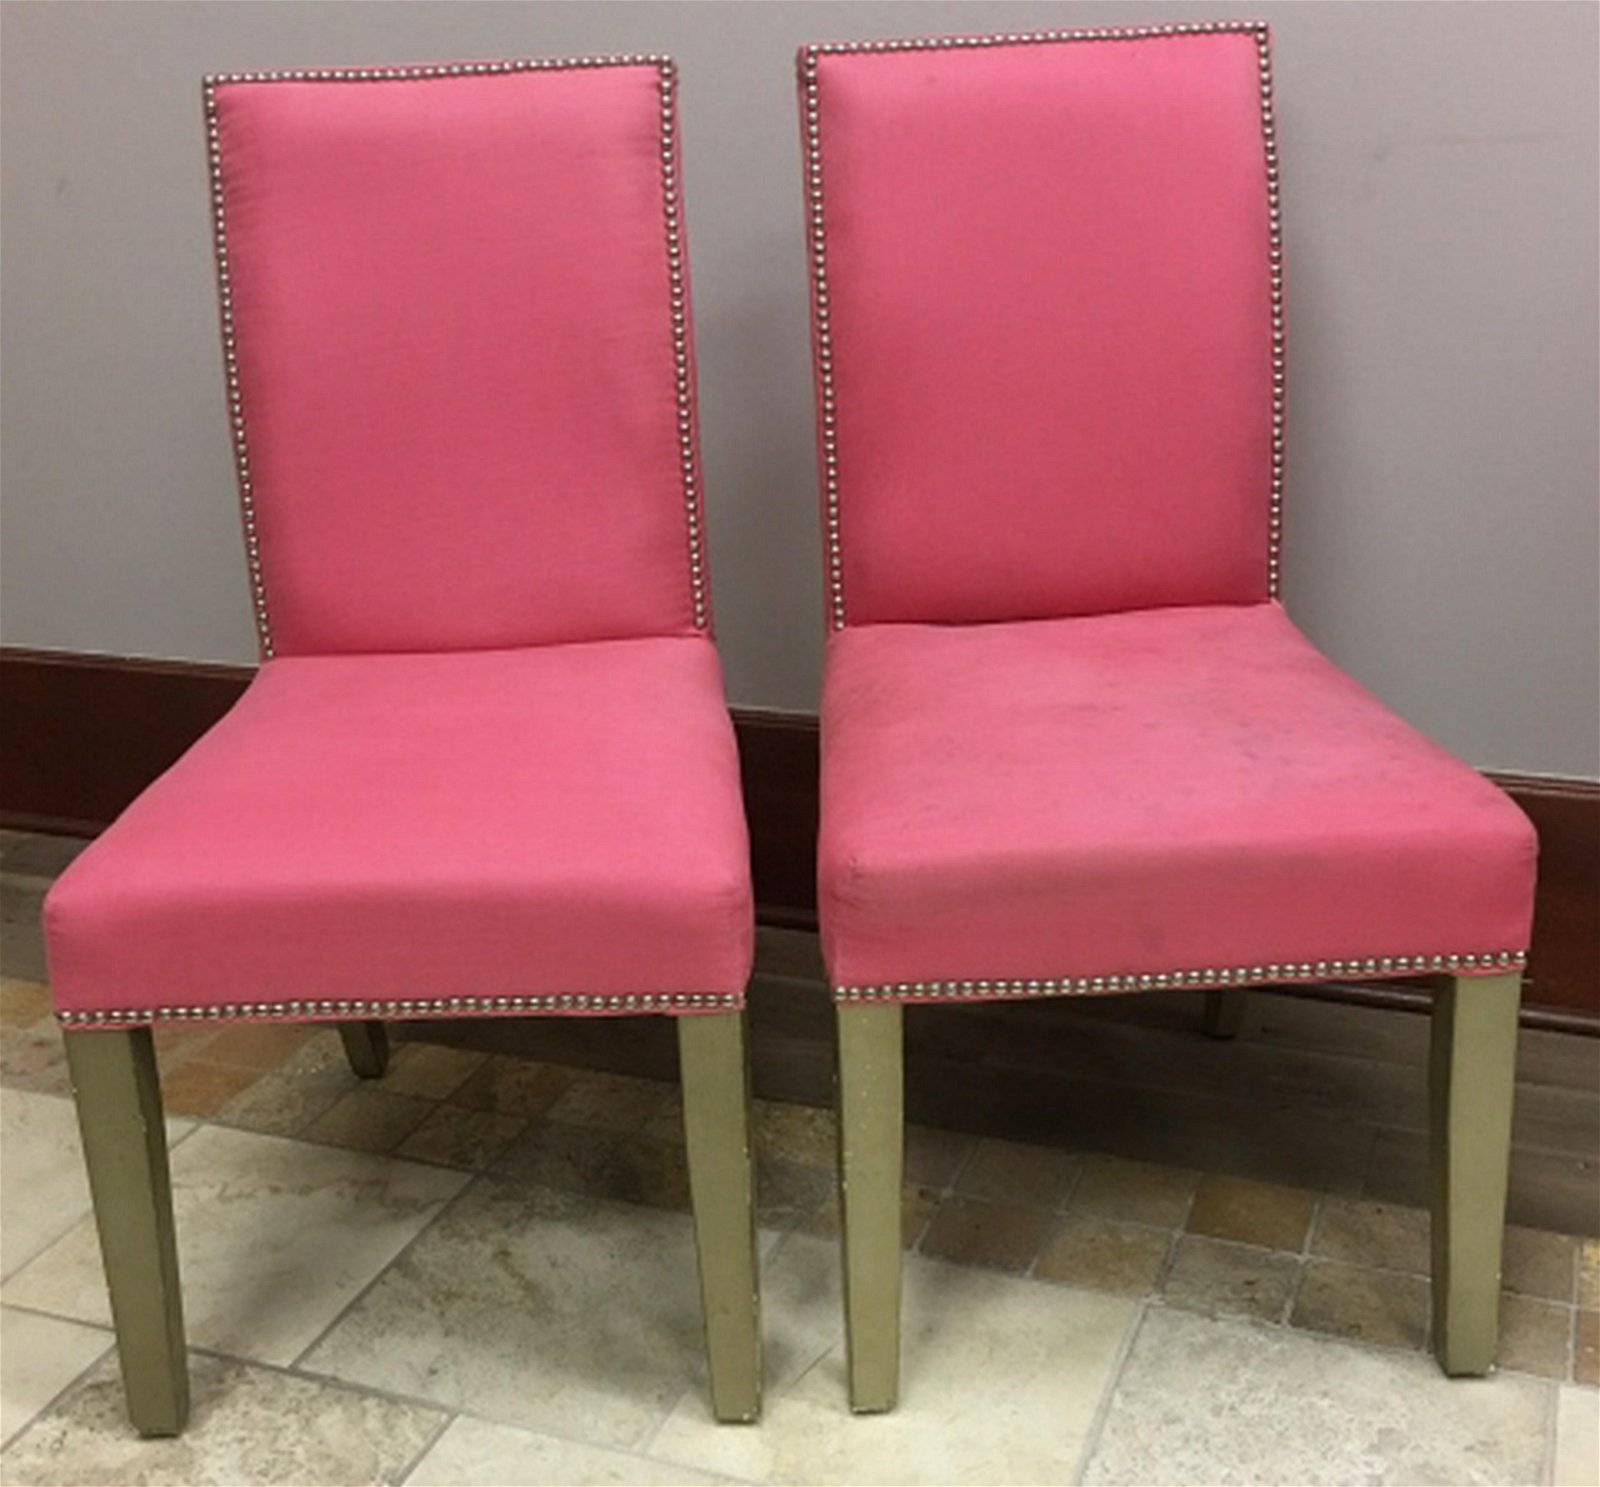 2 Parsons Style Fabric Upholstered Side Chairs